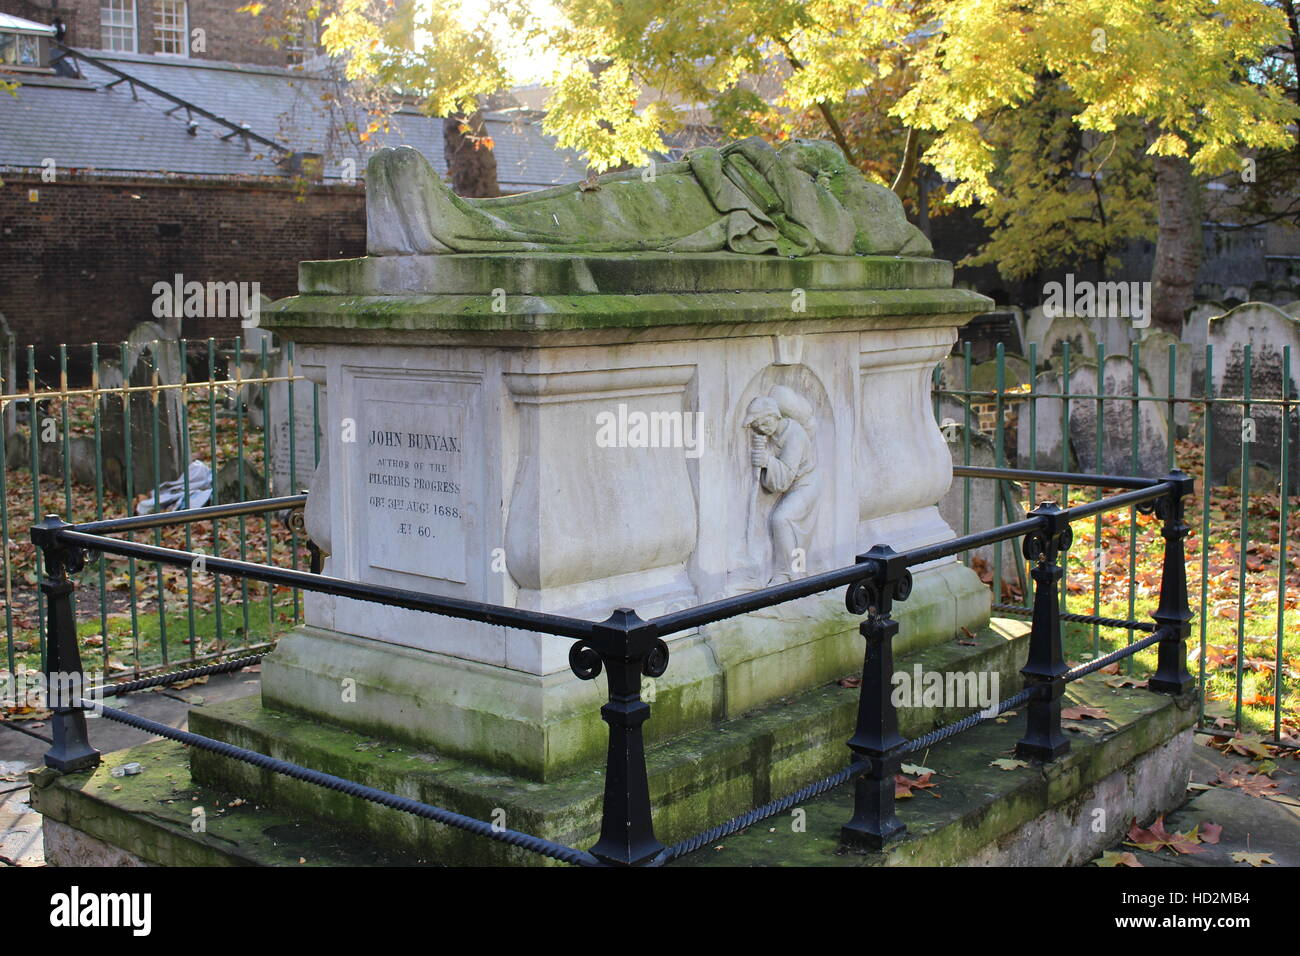 John Bunyan grave in Bunhill Fields burial ground, London - Stock Image